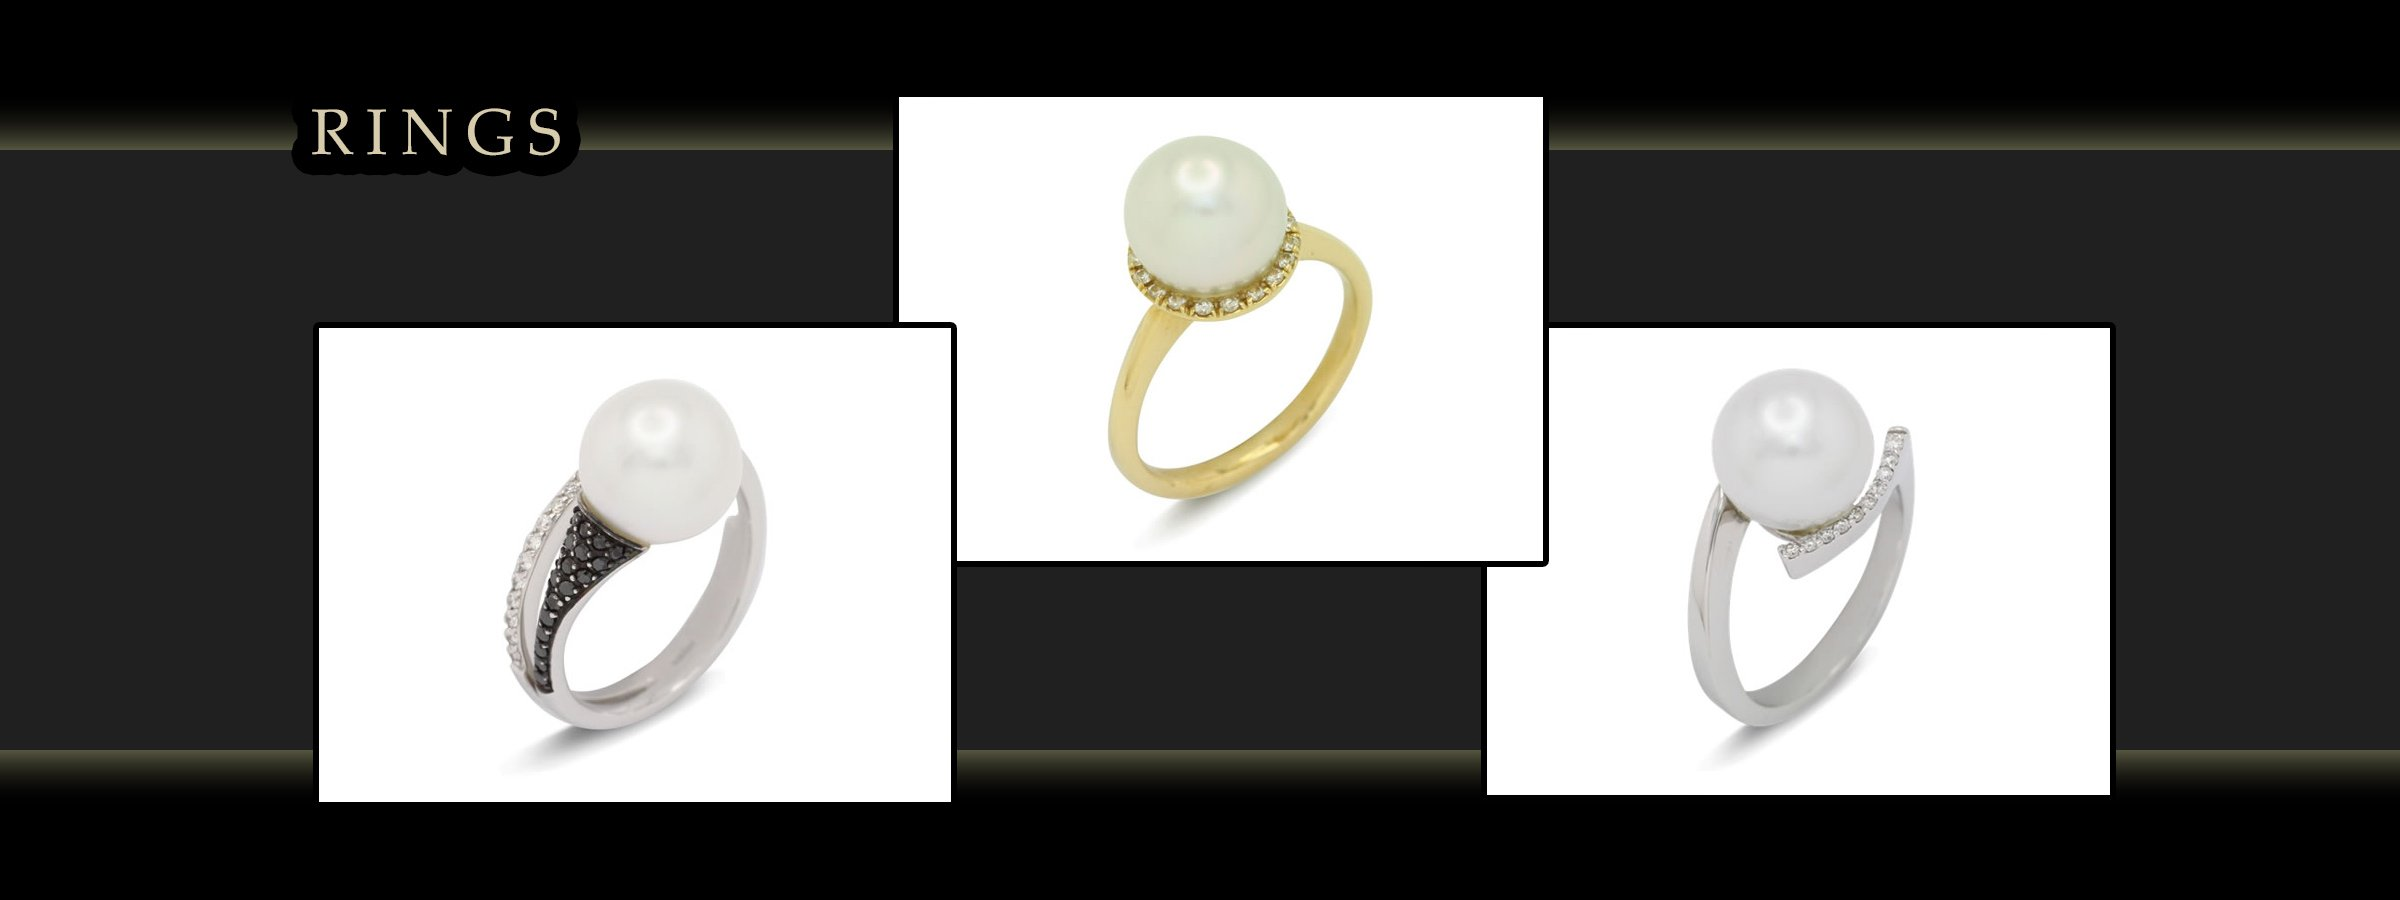 girls love pearls rings with white and yellow gold images